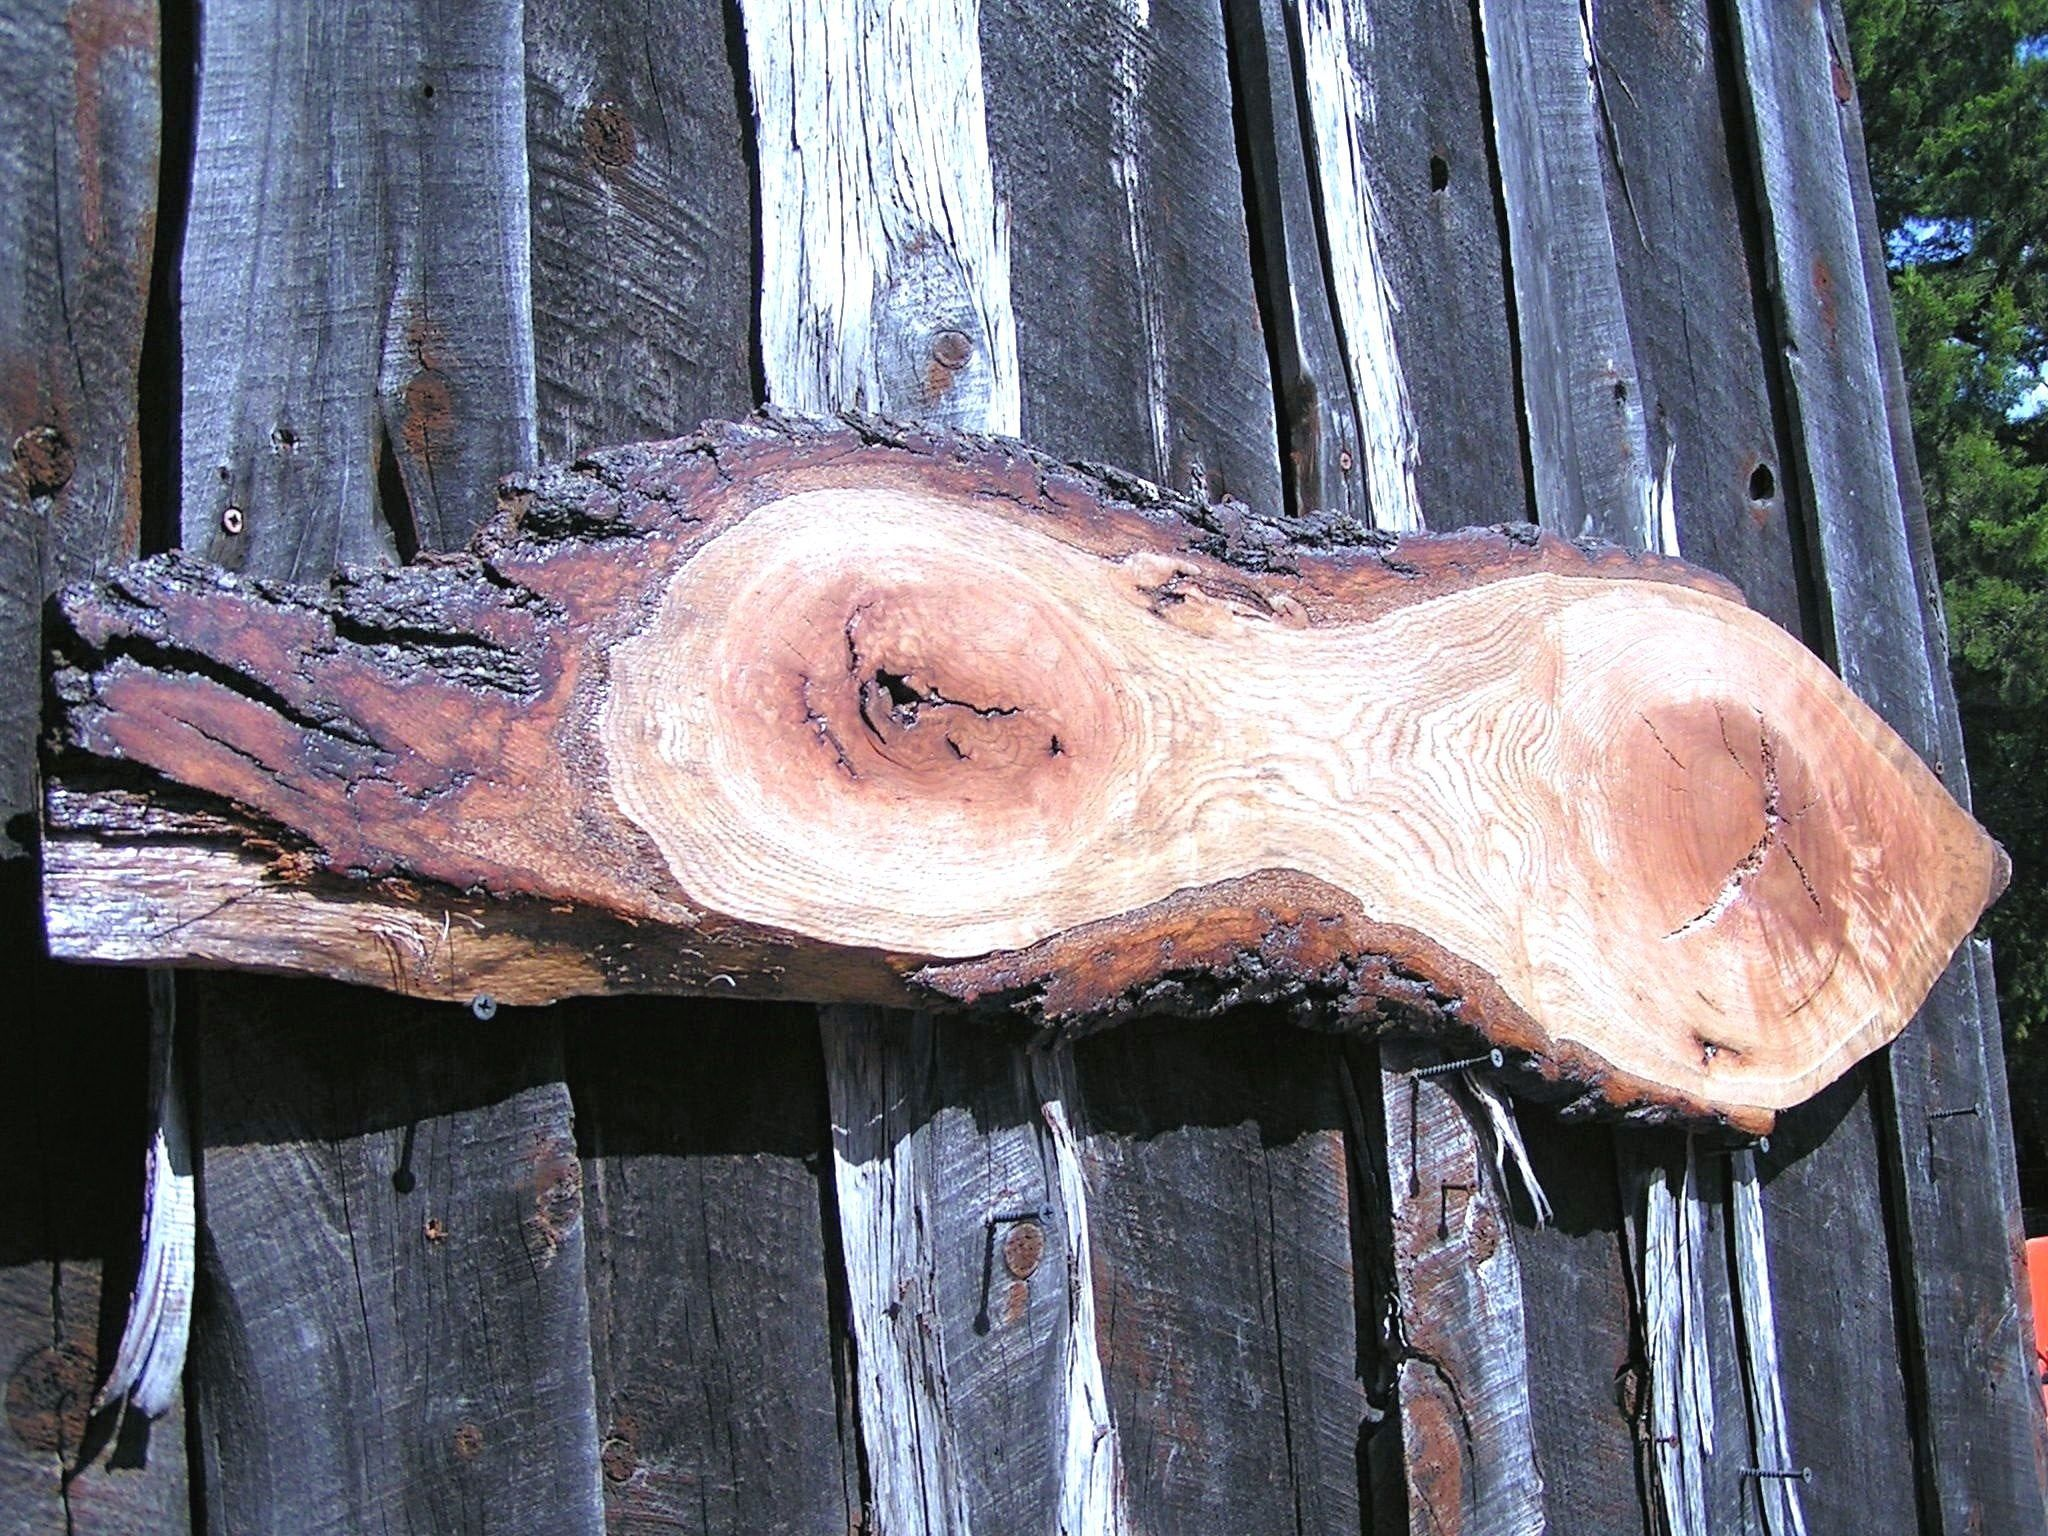 Large Live Edge Double Heart Pecan Wood Slab Tree Slice For Woodworking Sign Wedding Signatures Wall Hang 54 Inches Long 3 4 Thick Pecan Wood Wood Slab Live Edge